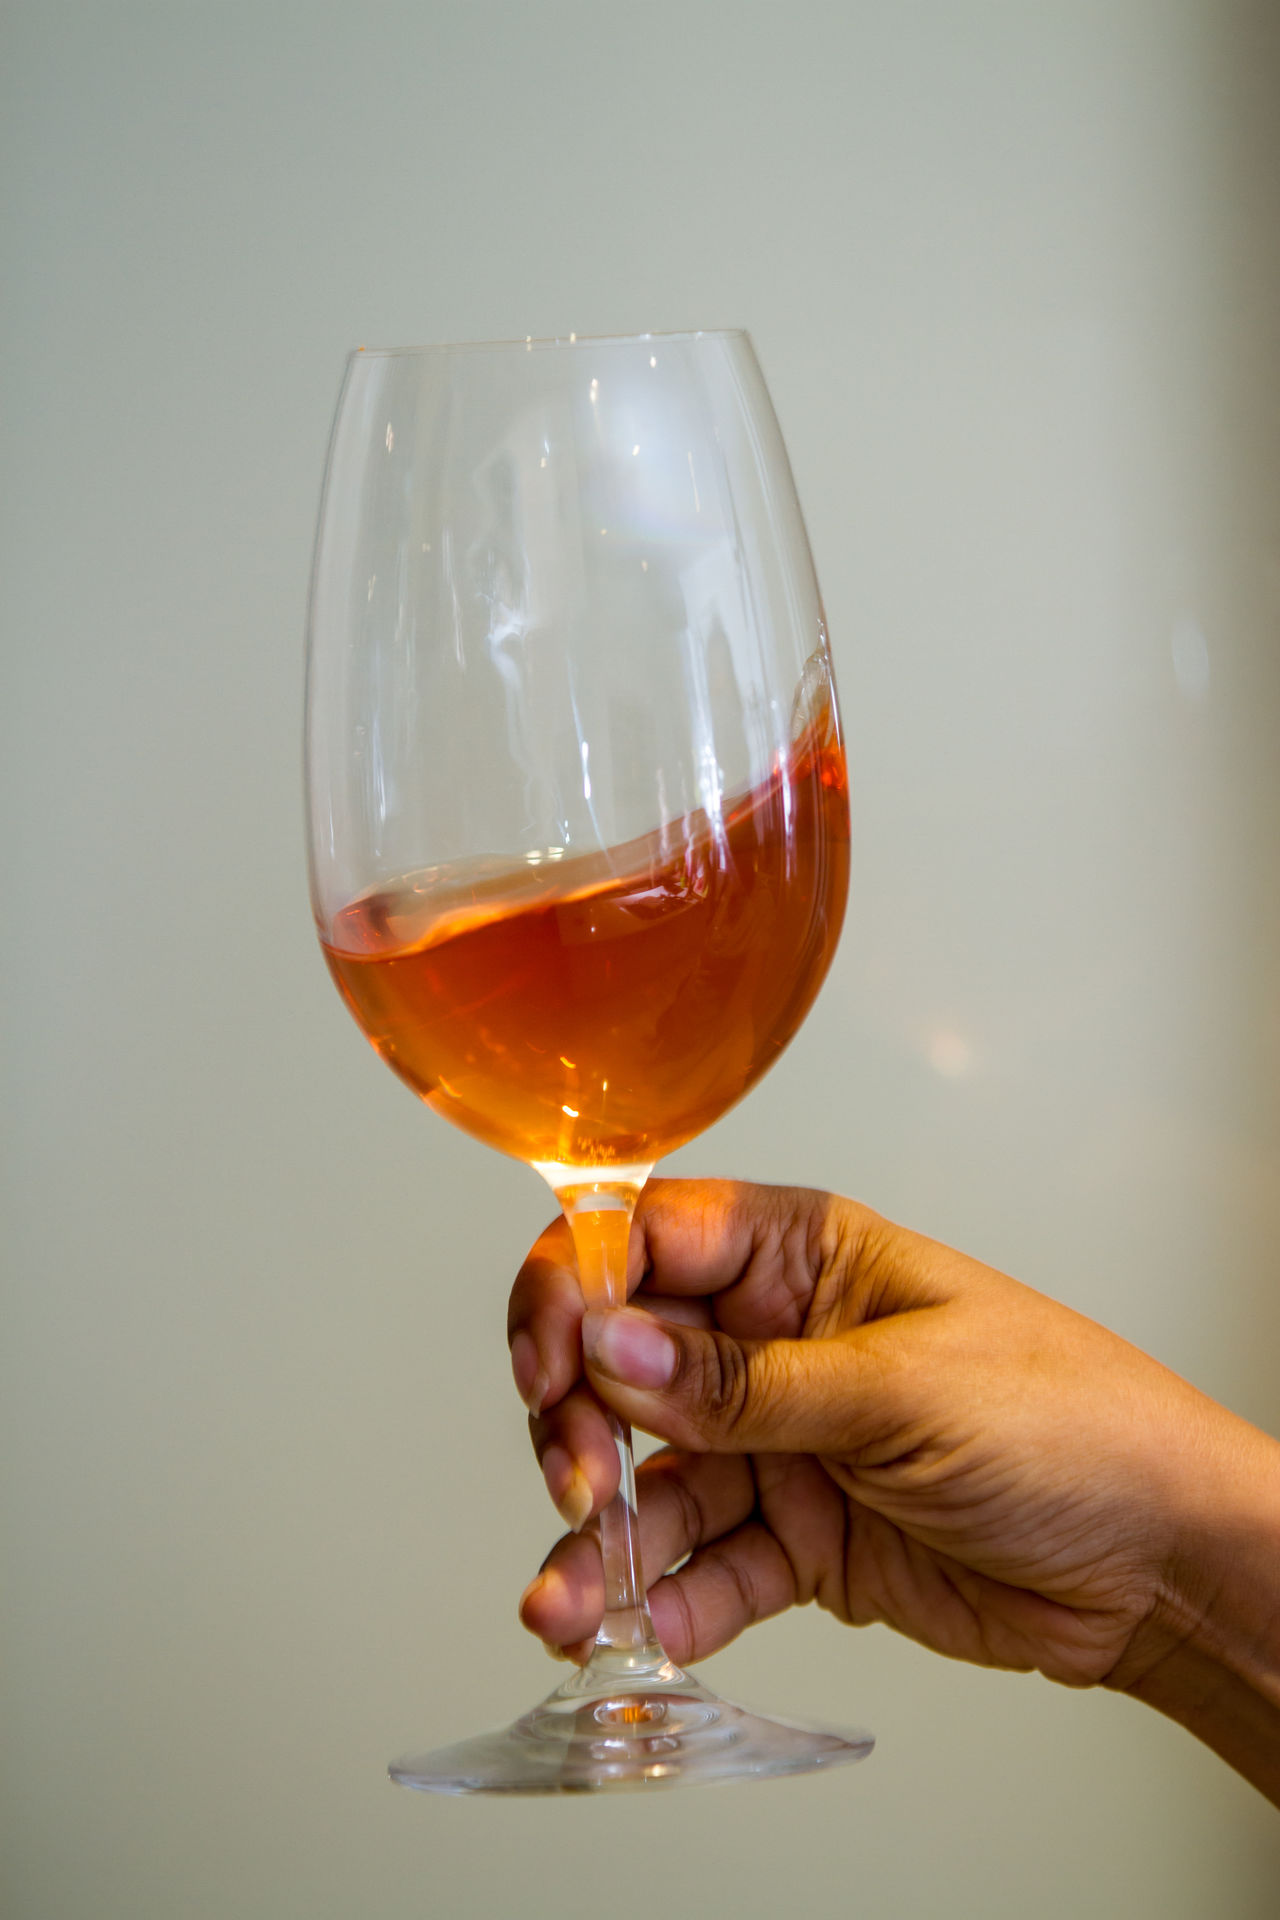 African American female swirling a wine glass half full of rose wine Adult Adults Only Alcohol Celebratory Toast Close-up Day Drink Drinking Drinking Glass Food And Drink Gray Background Half Full Holding Human Body Part Human Hand Indoors  One Person One Woman Only Only Women People Studio Shot Wine Wineglass Winetasting